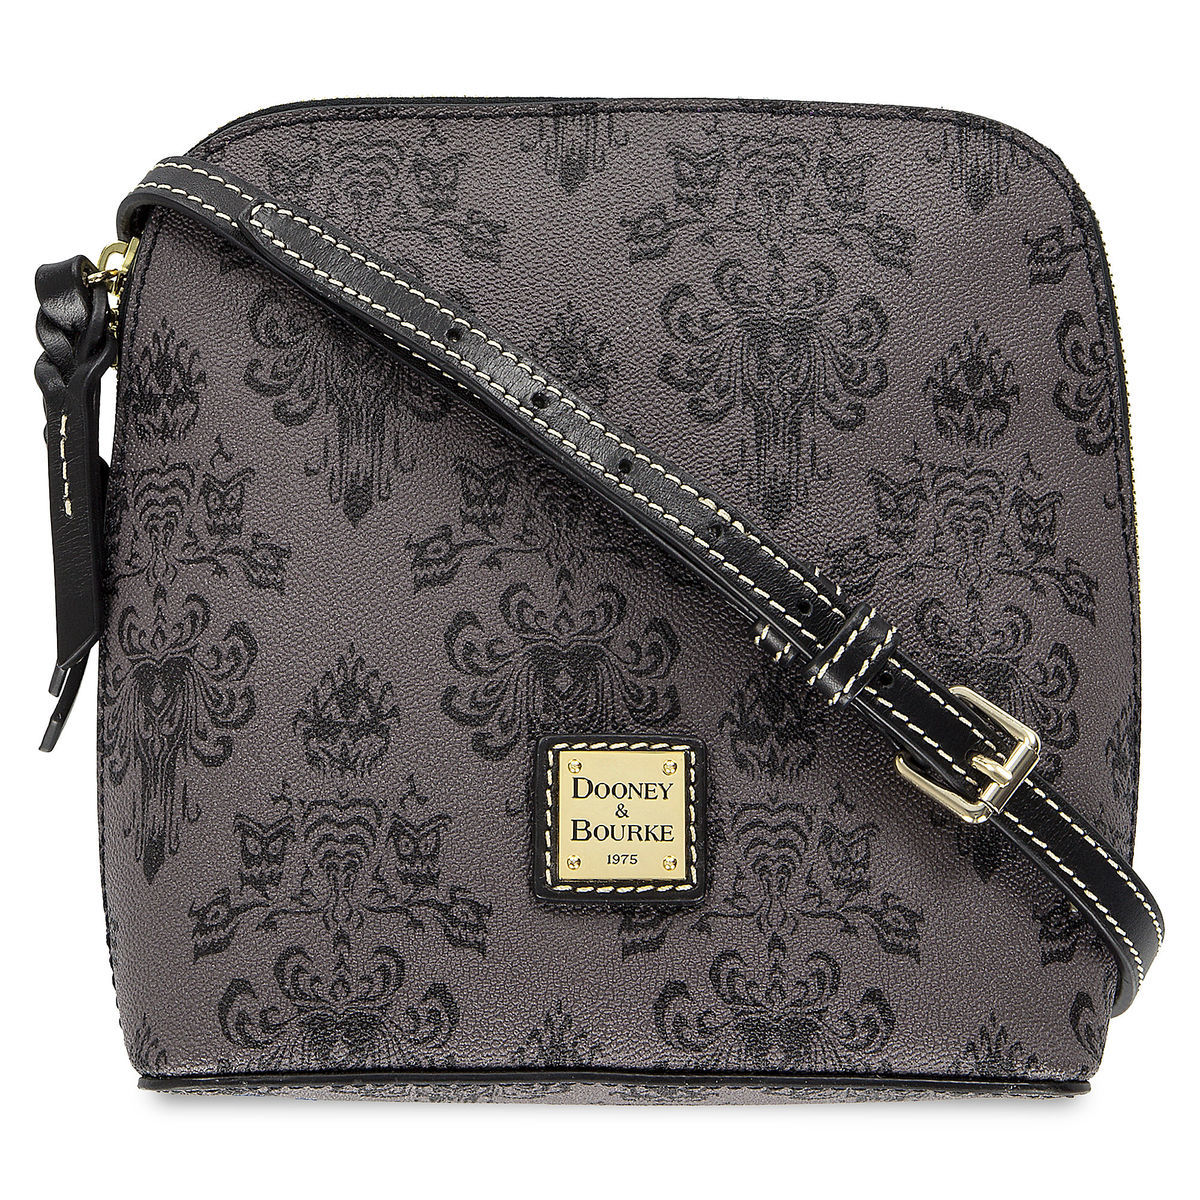 Product Image Of The Haunted Mansion Crossbody Bag By Dooney Bourke 1